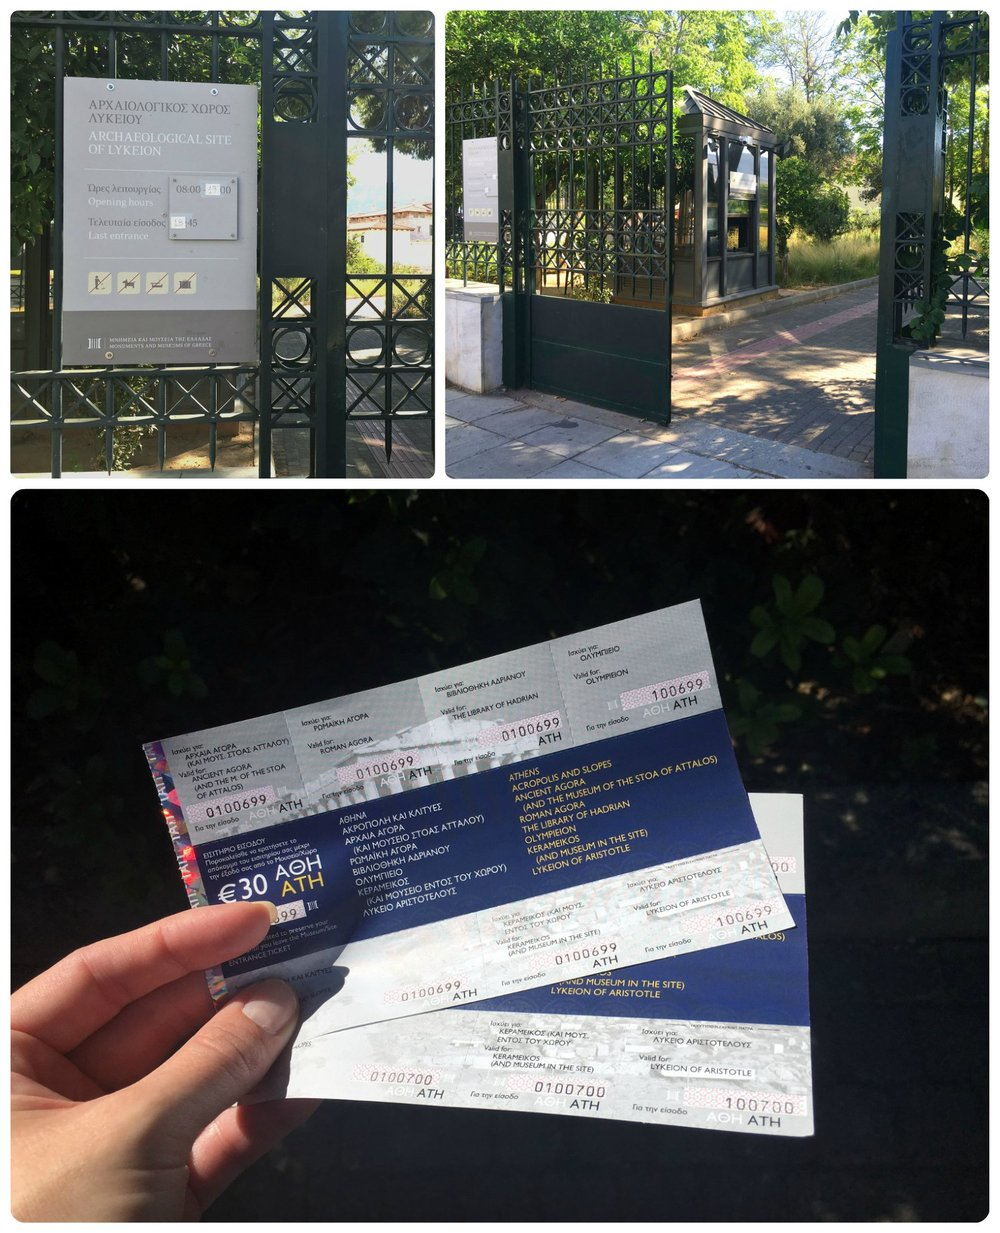 The Athens Combined Ticket is sold by the Greek Ministry of Culture and grants access to seven popular ancient ruin sites in Athens, Greece. We avoided a wait time in line at the Acropolis of Athens by purchasing our tickets at Aristotle's Lyceum.